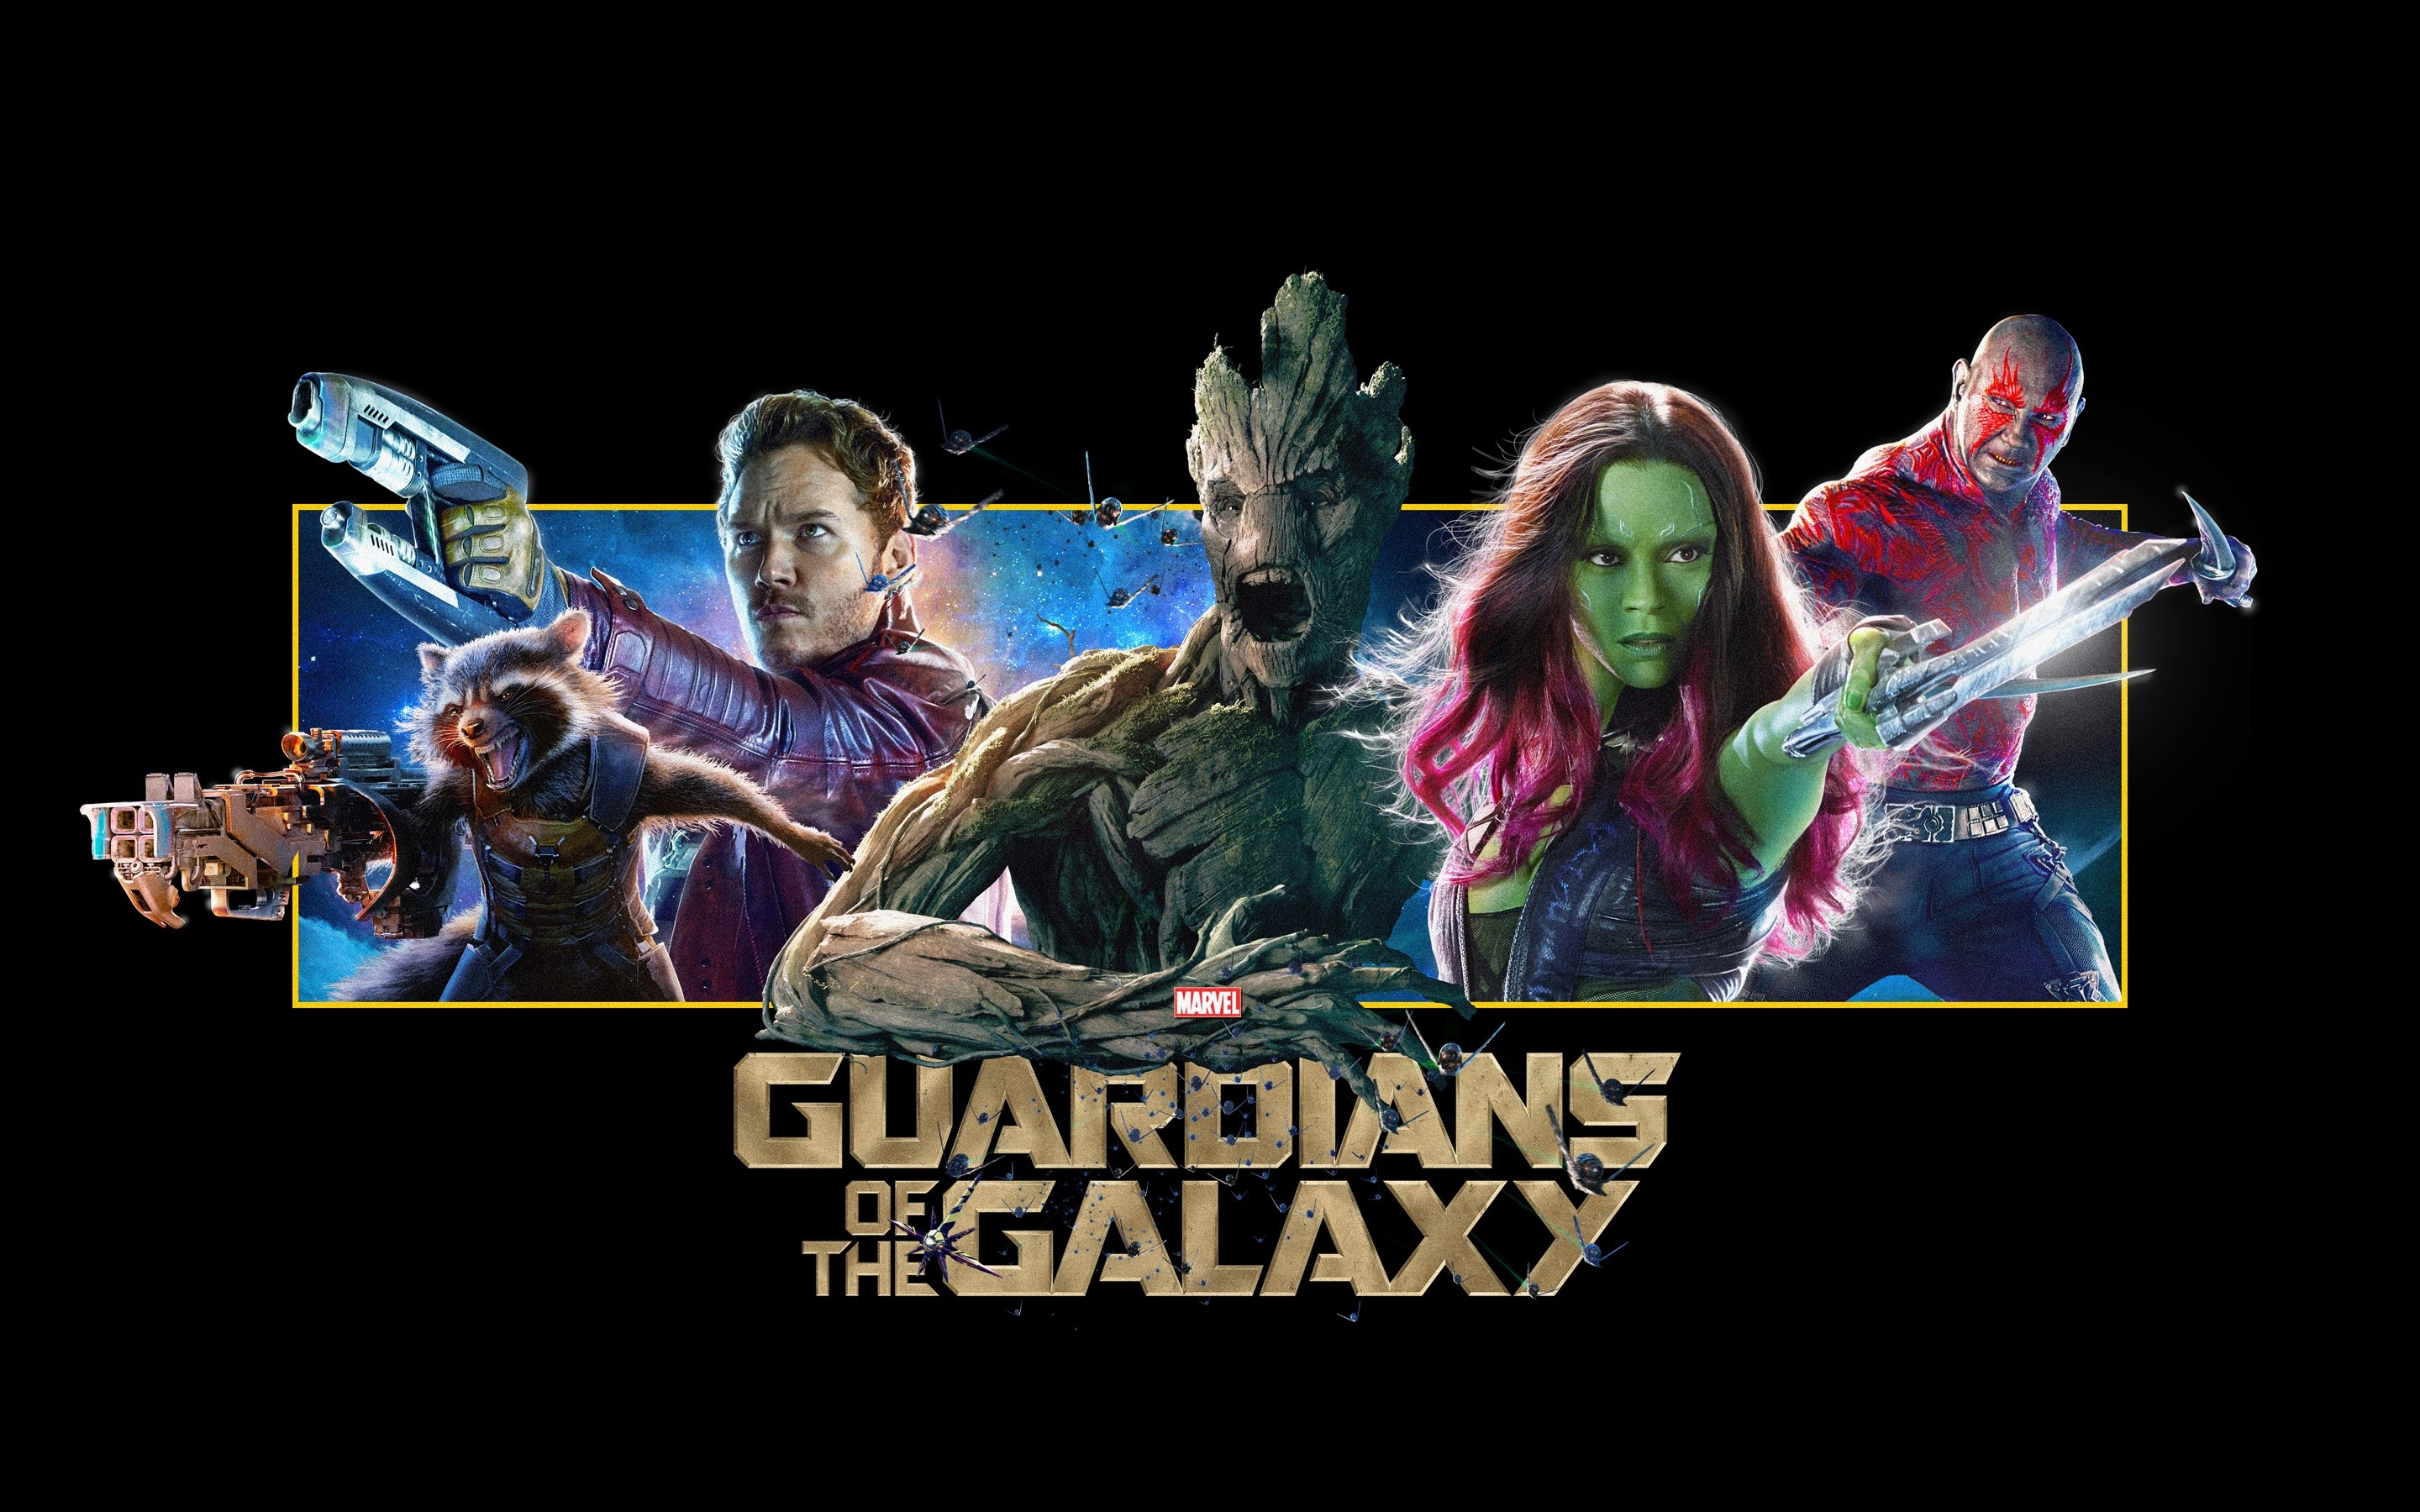 Wallpaper Banner of Guardians of the Galaxy